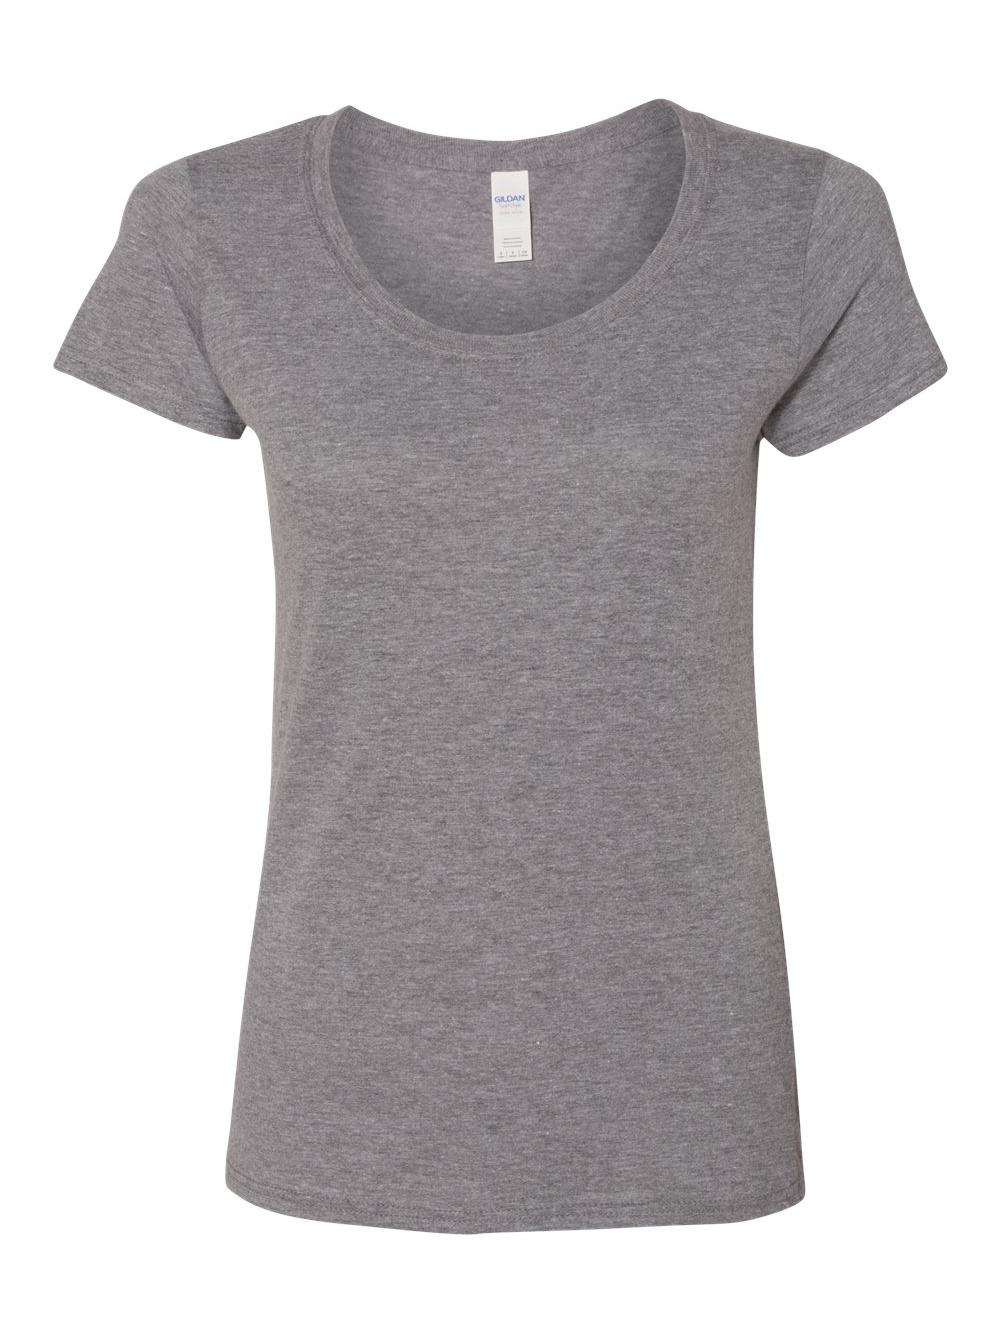 Gildan-Softstyle-Women-039-s-Deep-Scoopneck-T-Shirt-64550L thumbnail 12